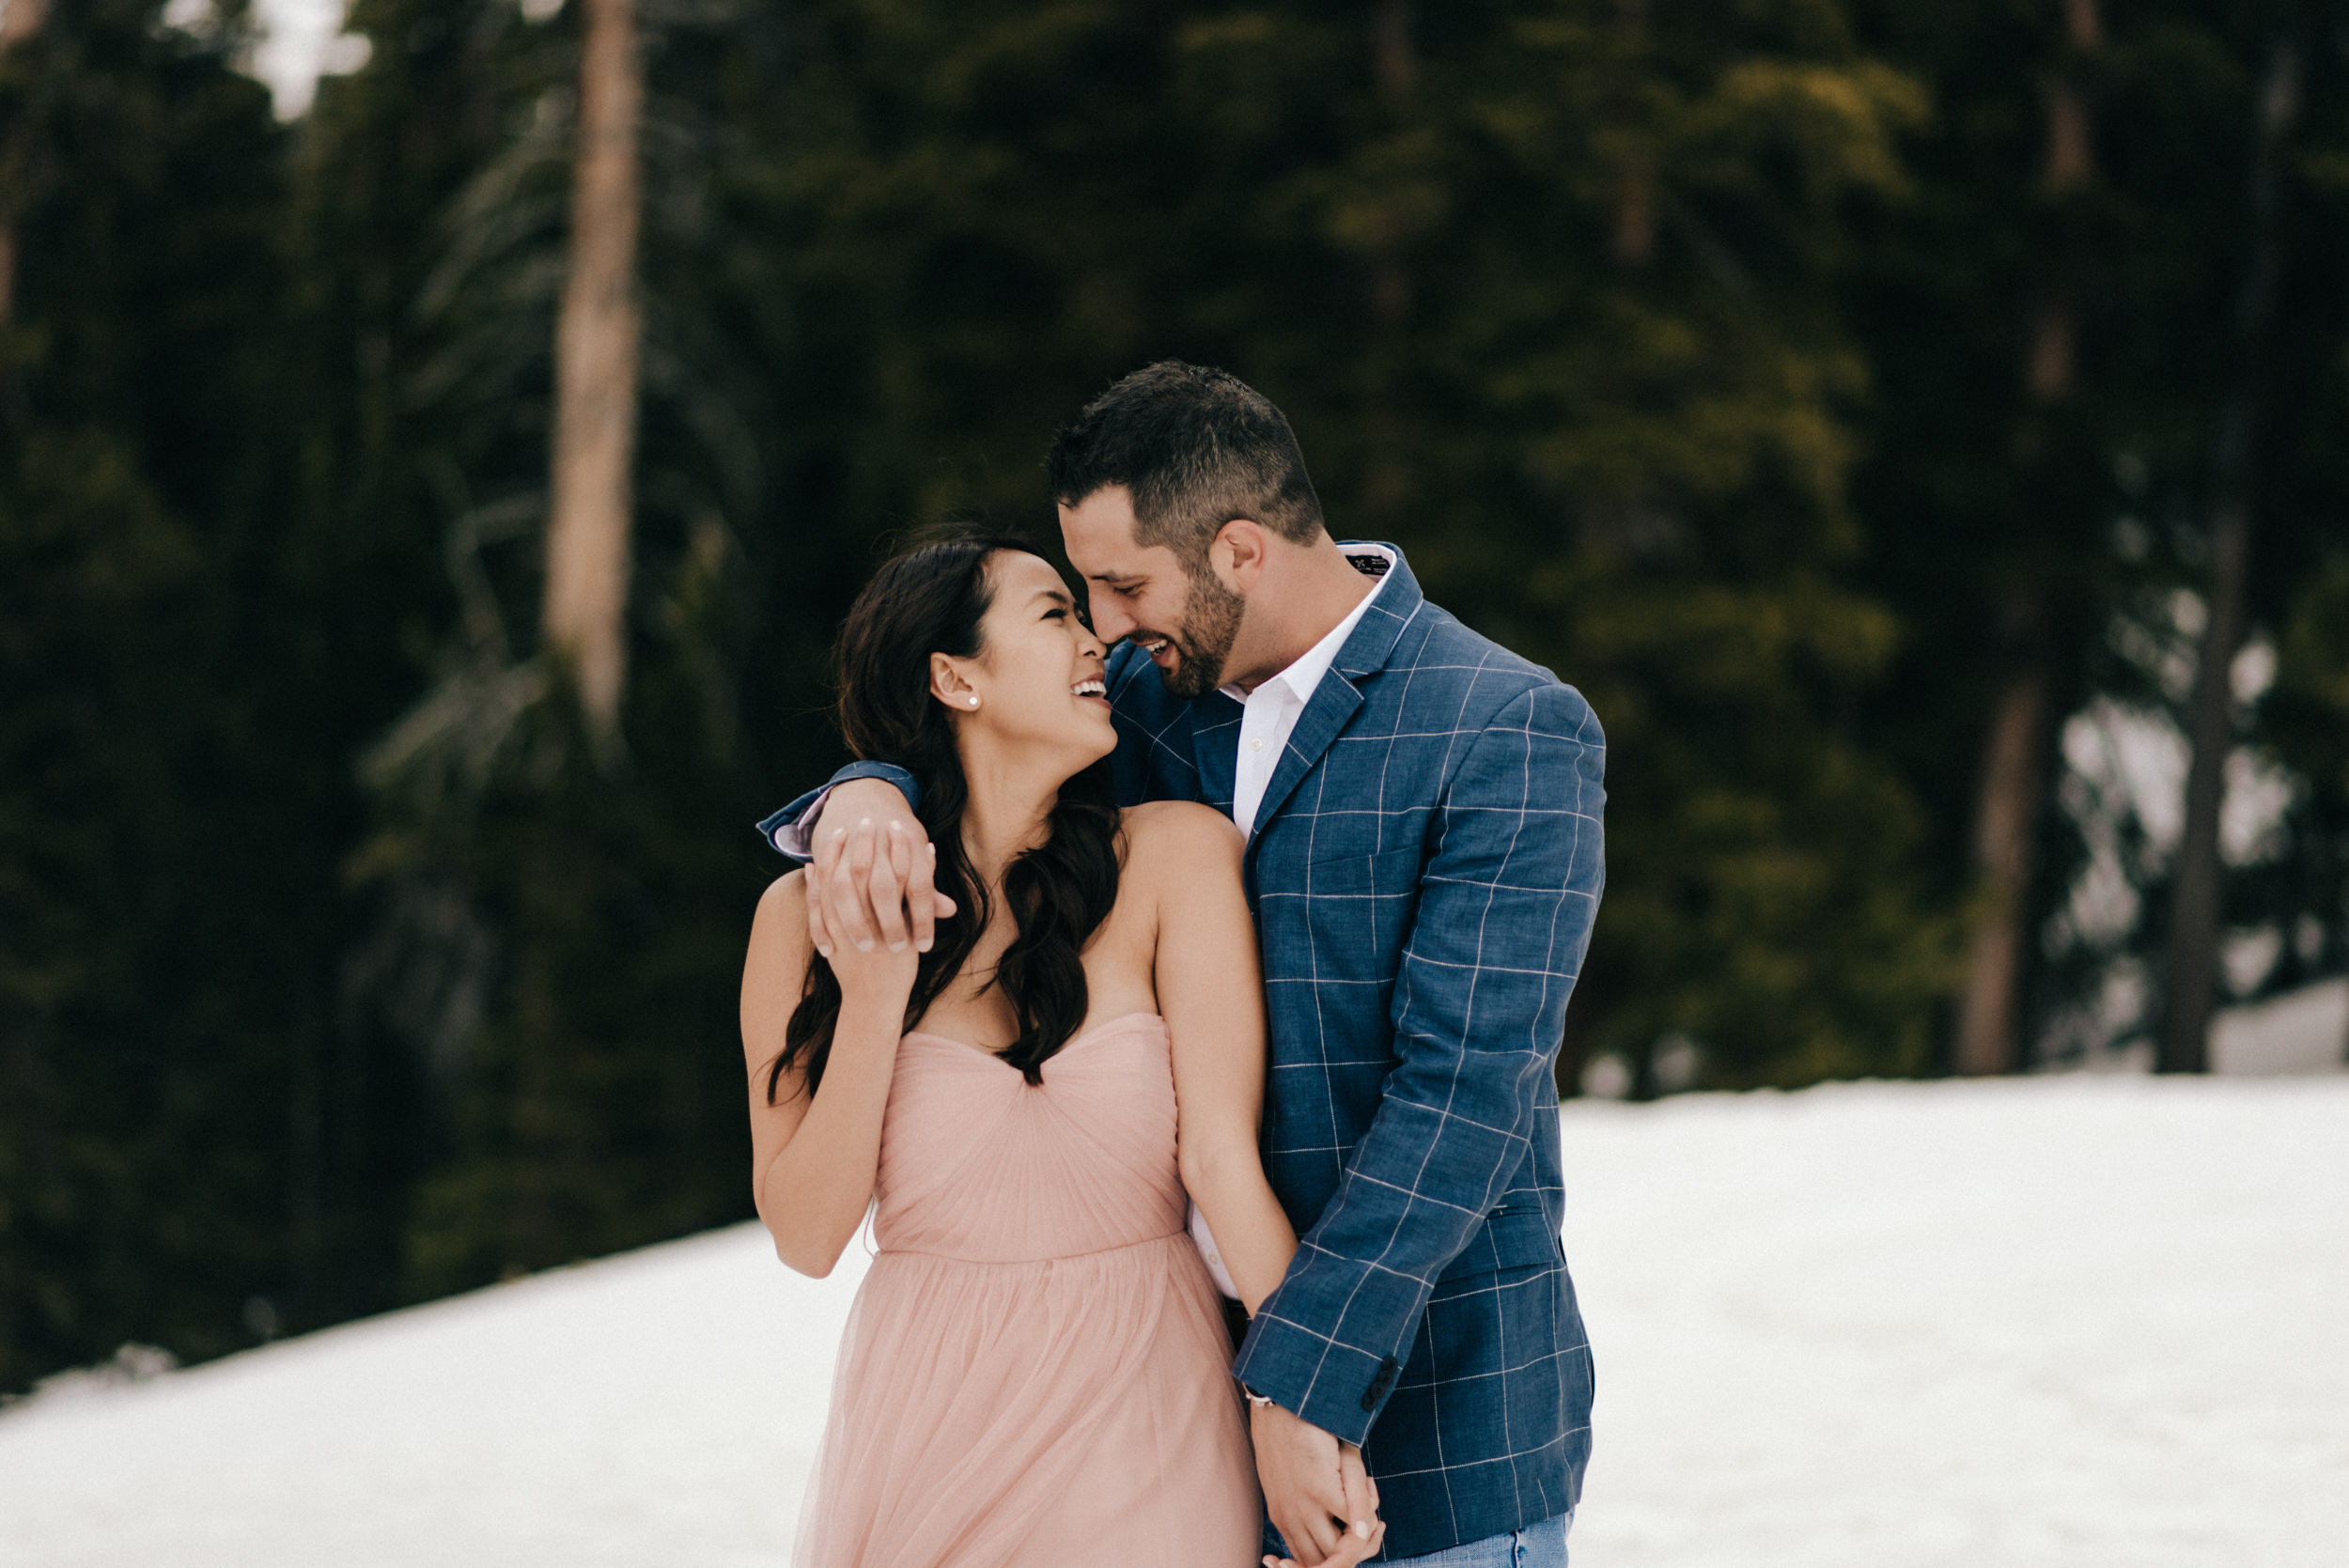 Snowy engagement shoot with Celina and Steve in Winter Park, Colorado.